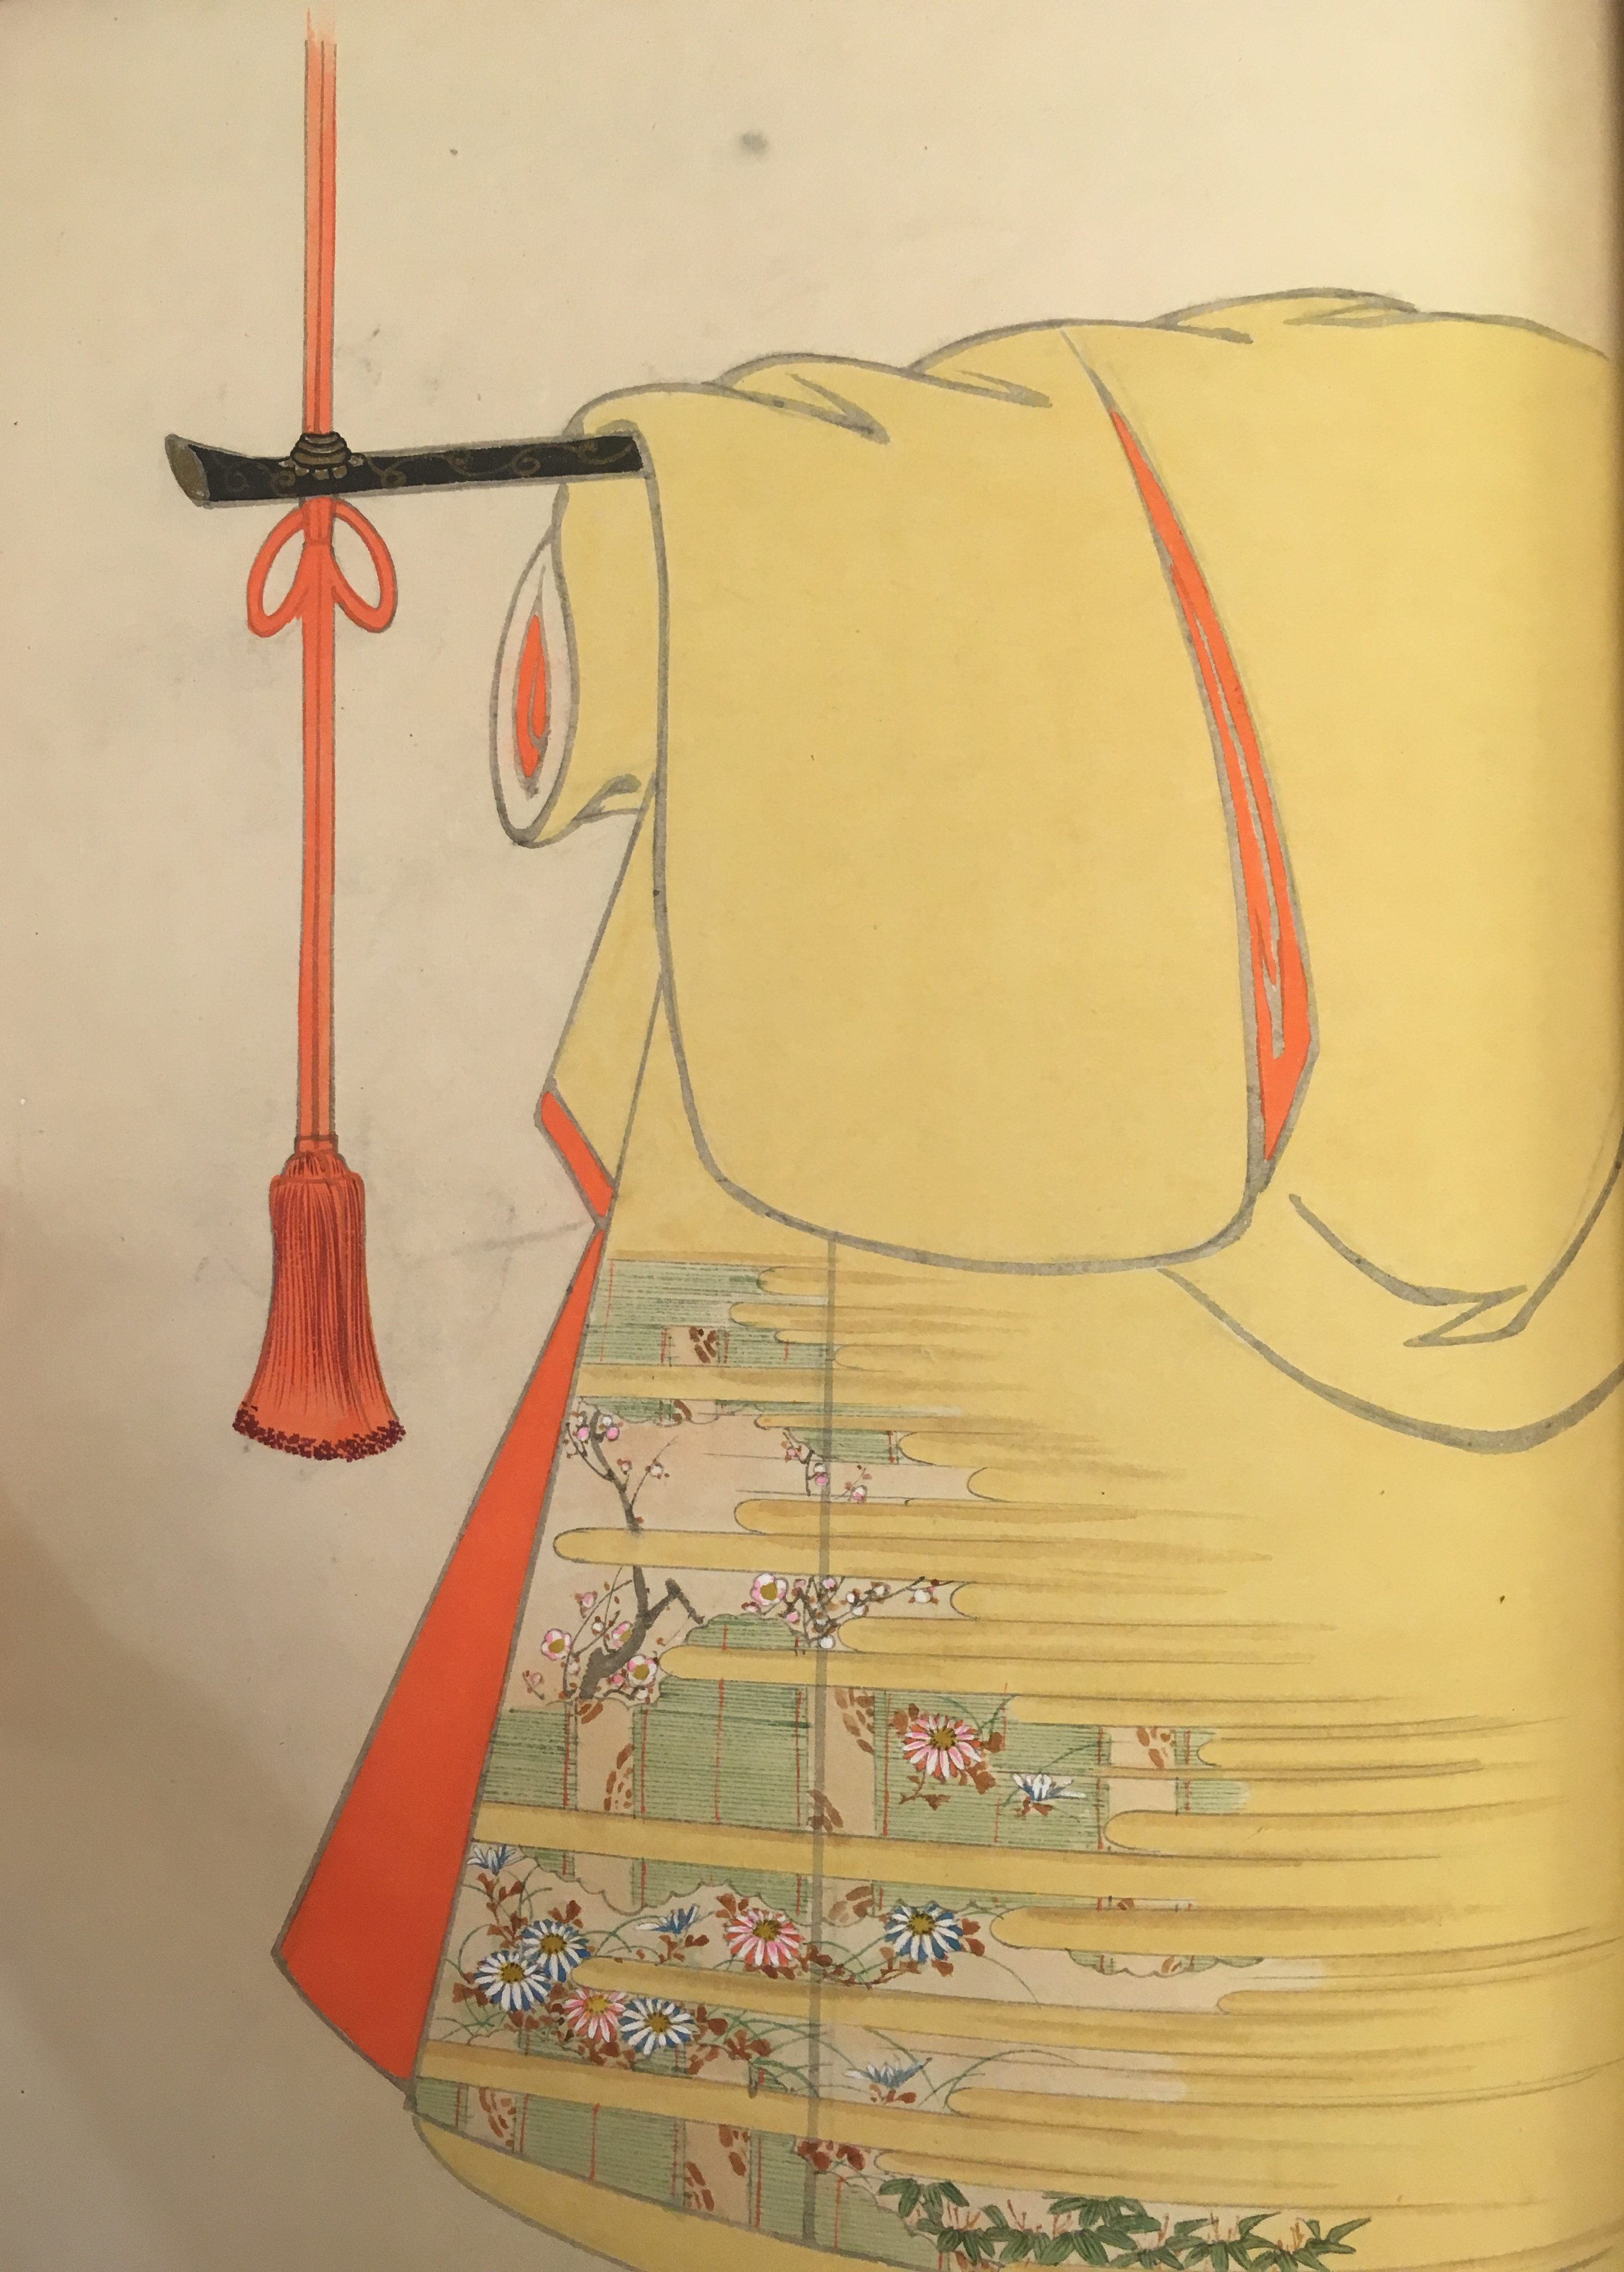 A design of a yellow kimono with red-orange interior. The pattern in the lower corner depicts plums and chrysanthemums partially obscured by a haze.